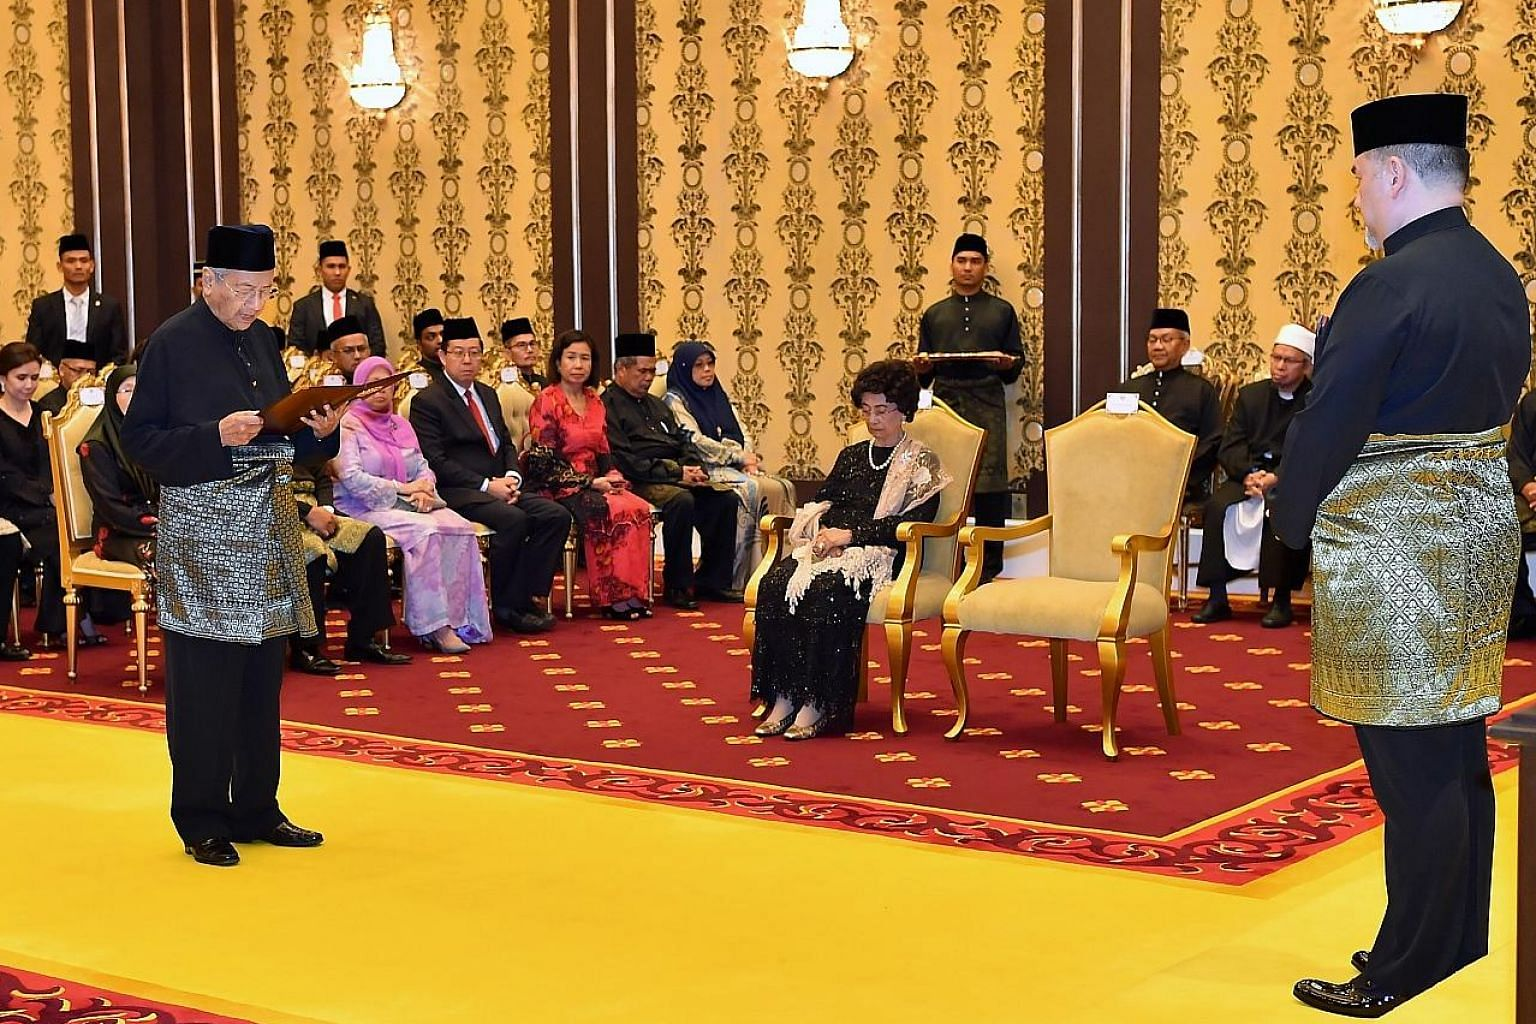 Tun Dr Mahathir Mohamad being sworn in as Prime Minister, witnessed by Sultan Muhammad V, at Istana Negara last night. Dr Mahathir's wife Siti Hasmah Mohd Ali (seated facing him) was among those present. The 92-year-old Pakatan Harapan leader is now